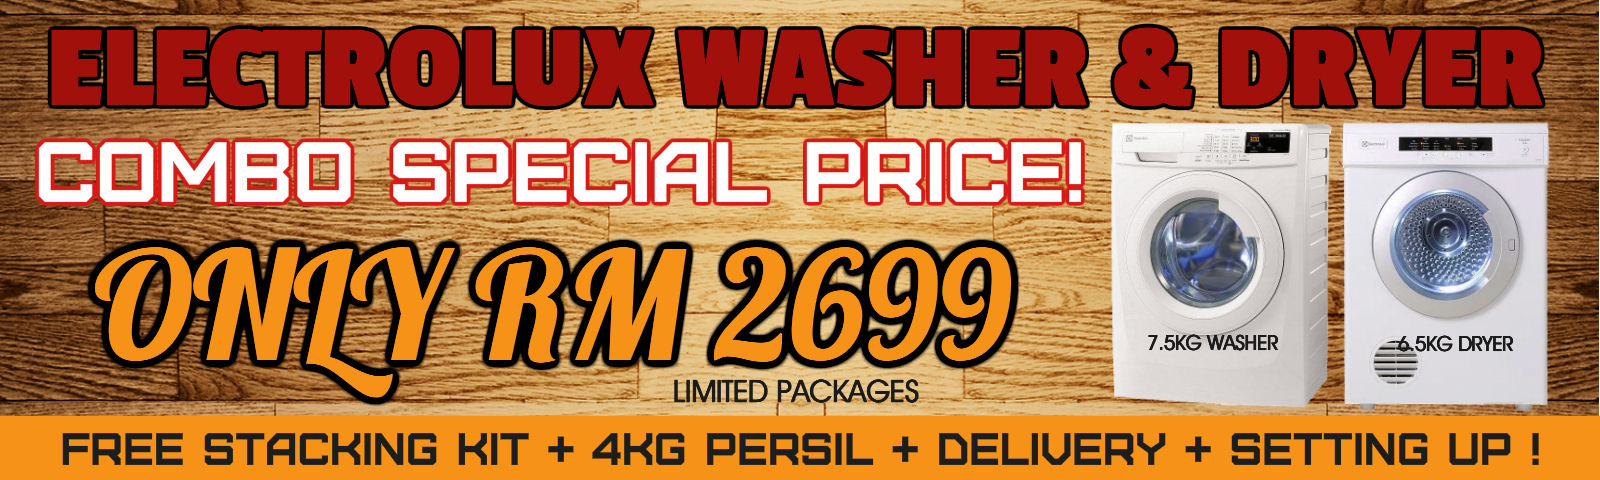 Electrolux washer & dryer combo offer!!